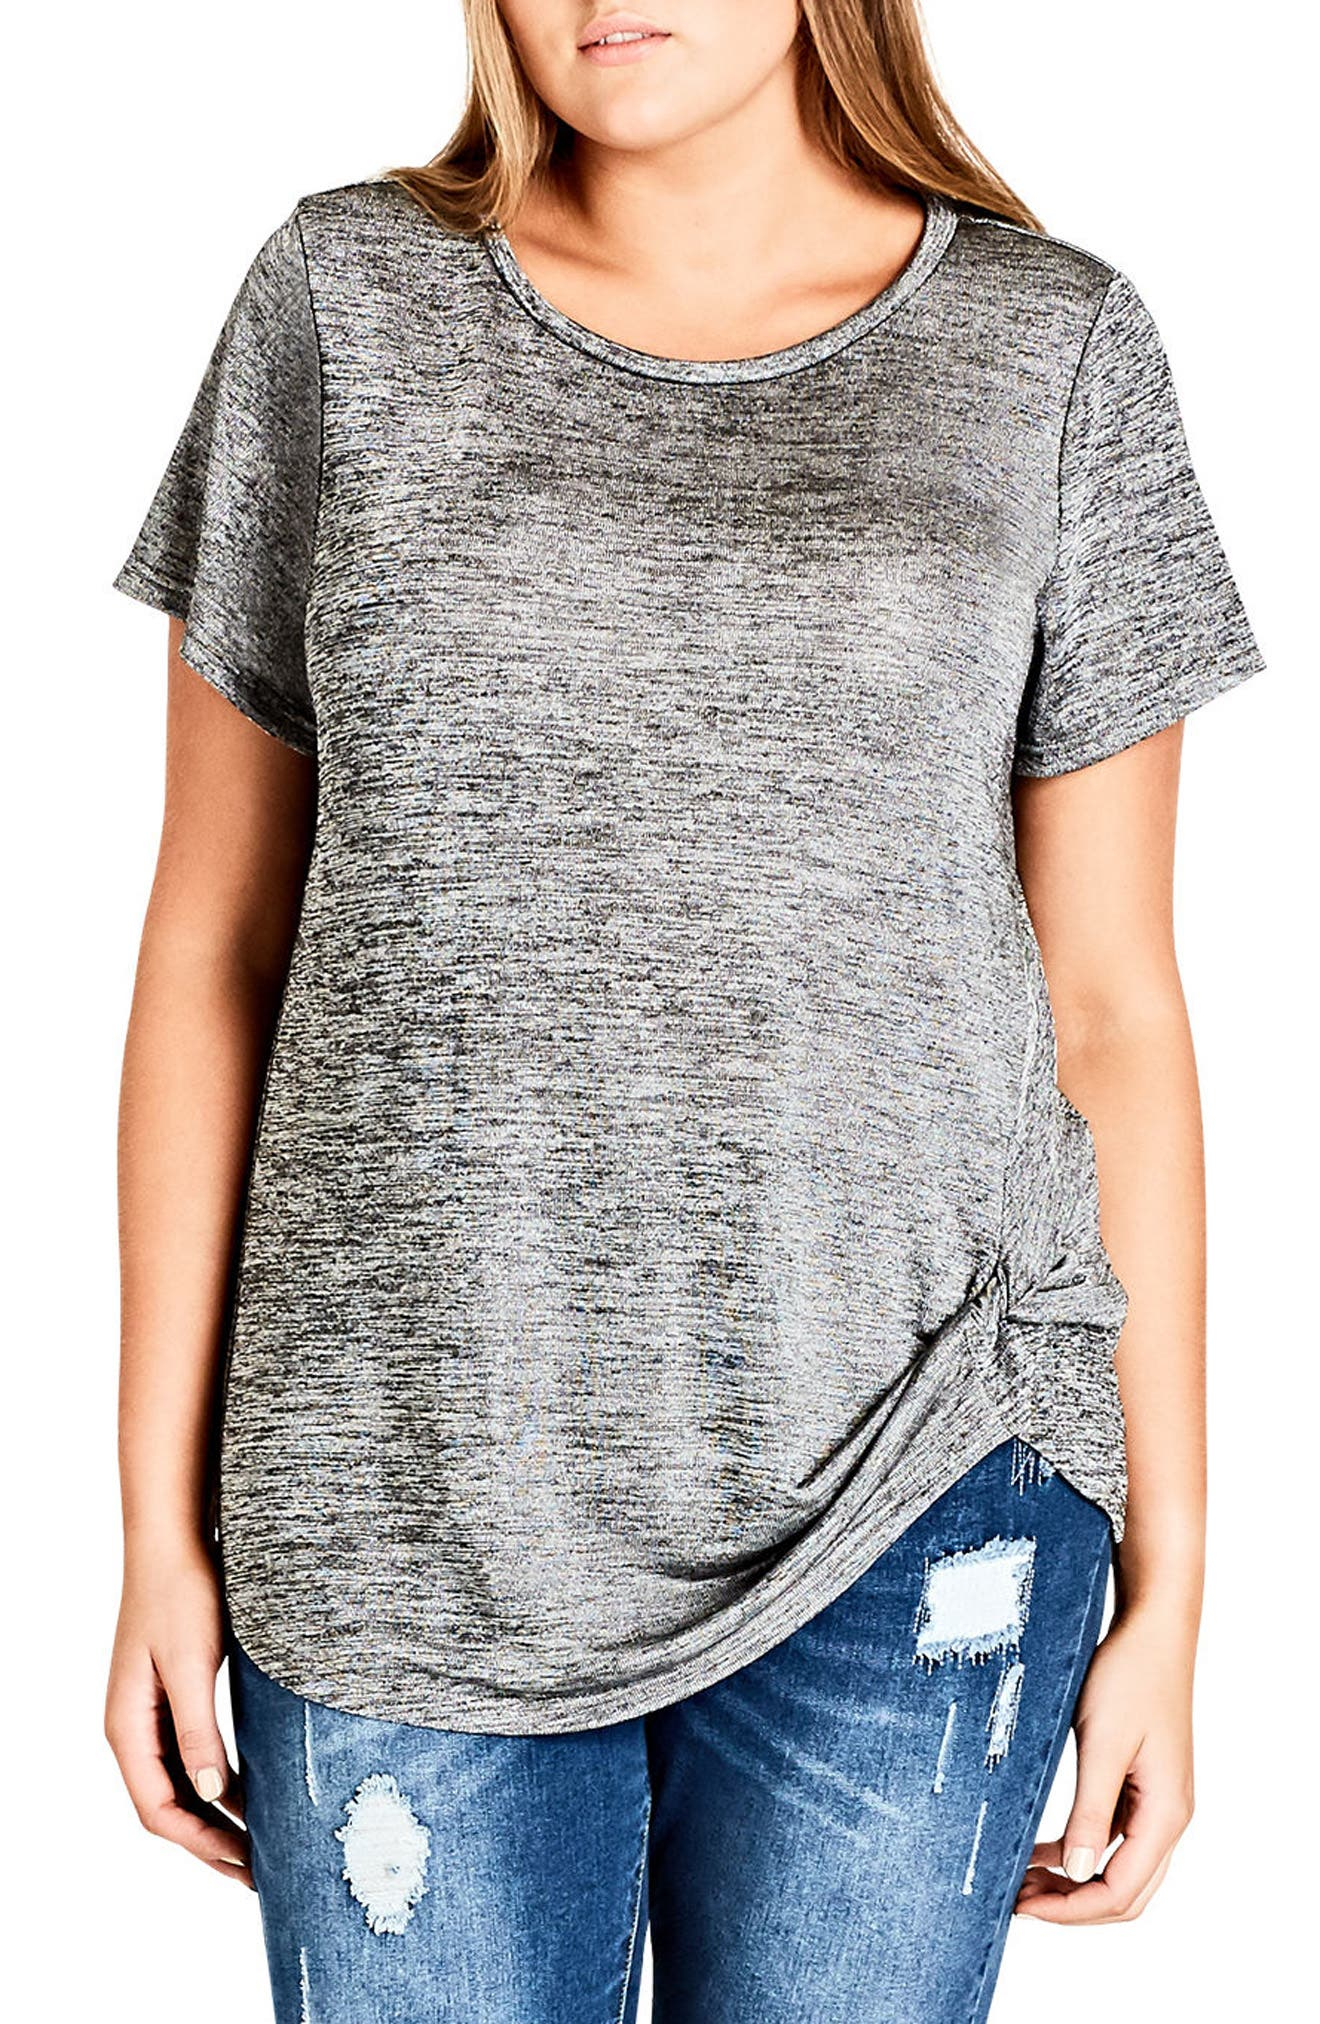 Alternate Image 1 Selected - City Chic In Knots Top (Plus Size)